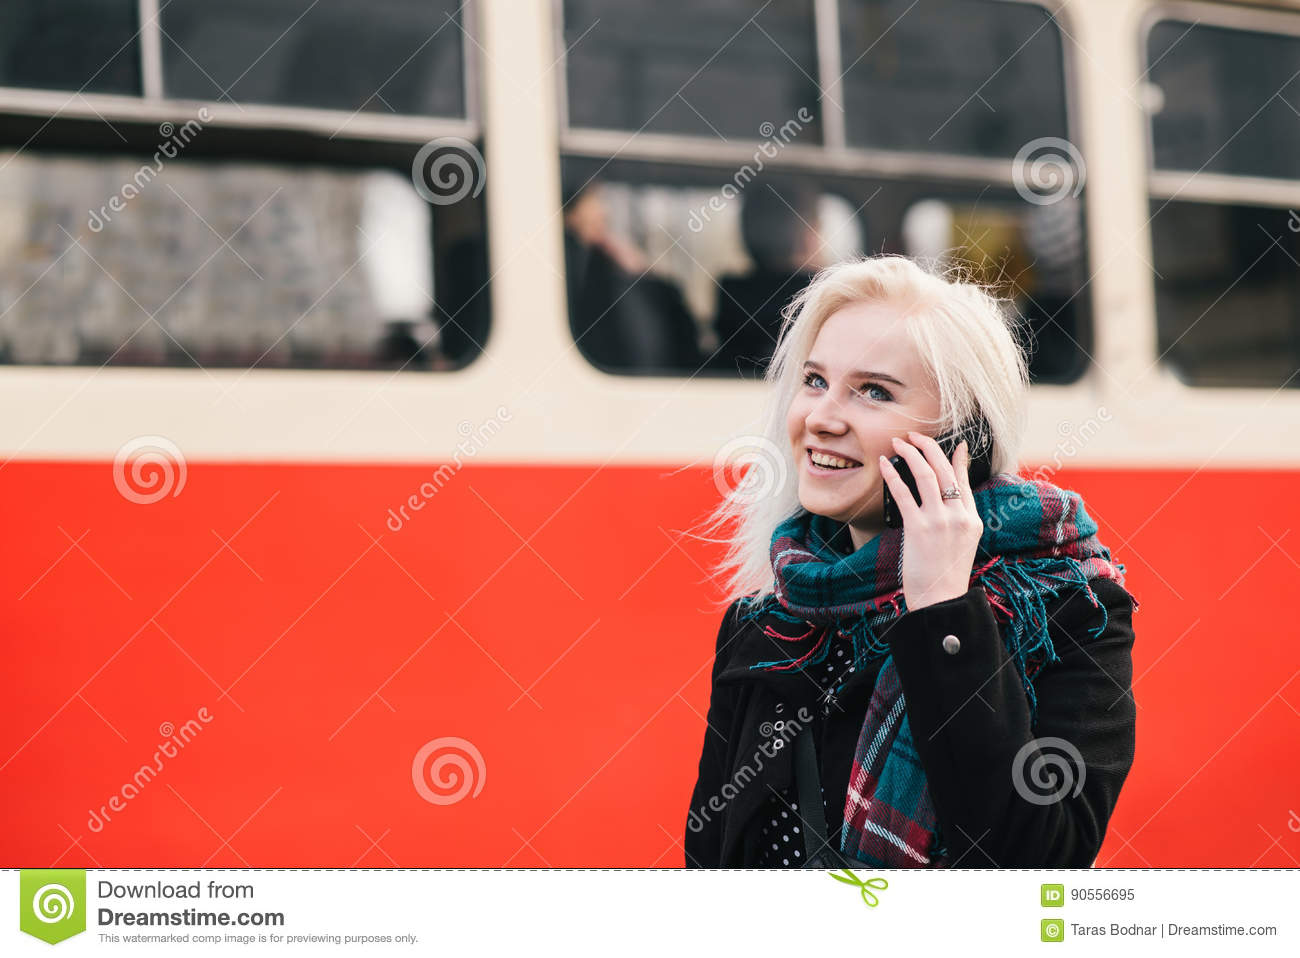 Young blonde smiling girl talking on the phone on a background of red train. Outdoor portrait of a girl.